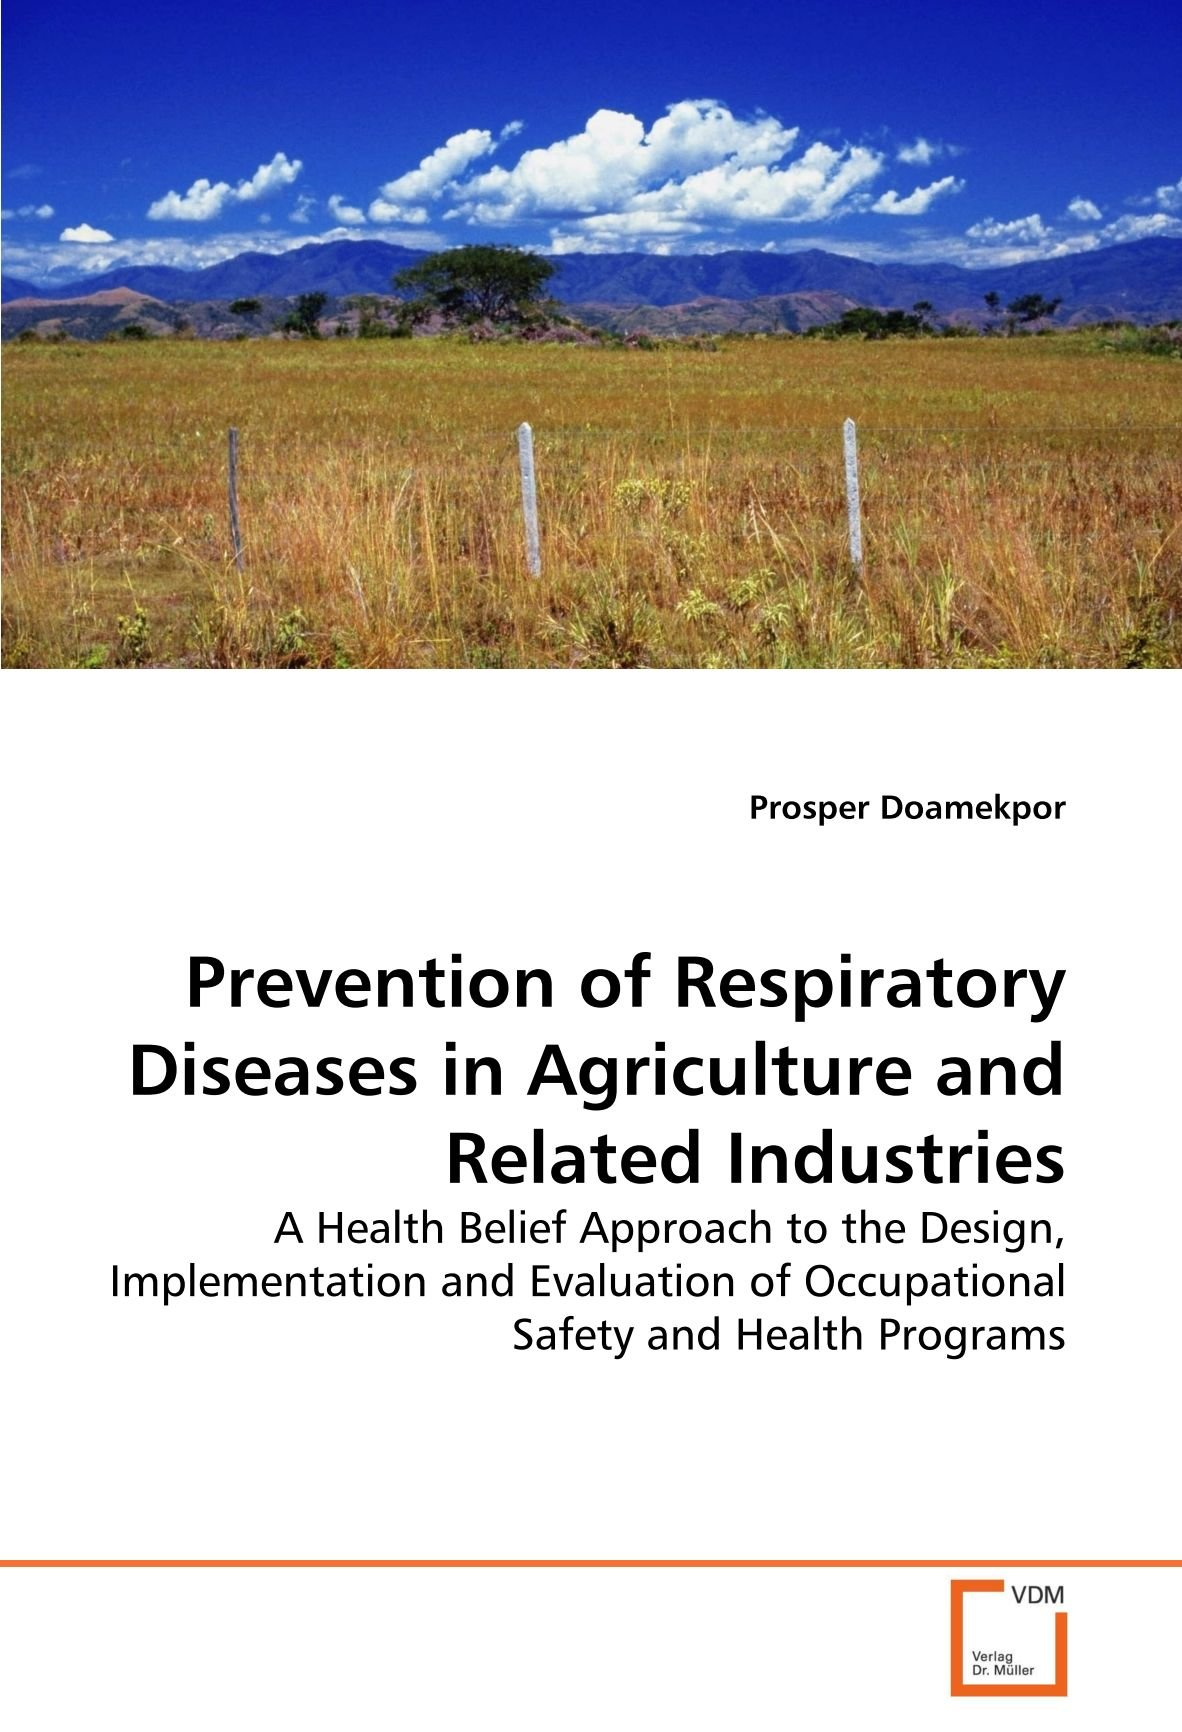 Read Online Prevention of Respiratory Diseases in Agriculture and Related Industries: A Health Belief Approach to the Design, Implementation and Evaluation of Occupational Safety and Health Programs PDF